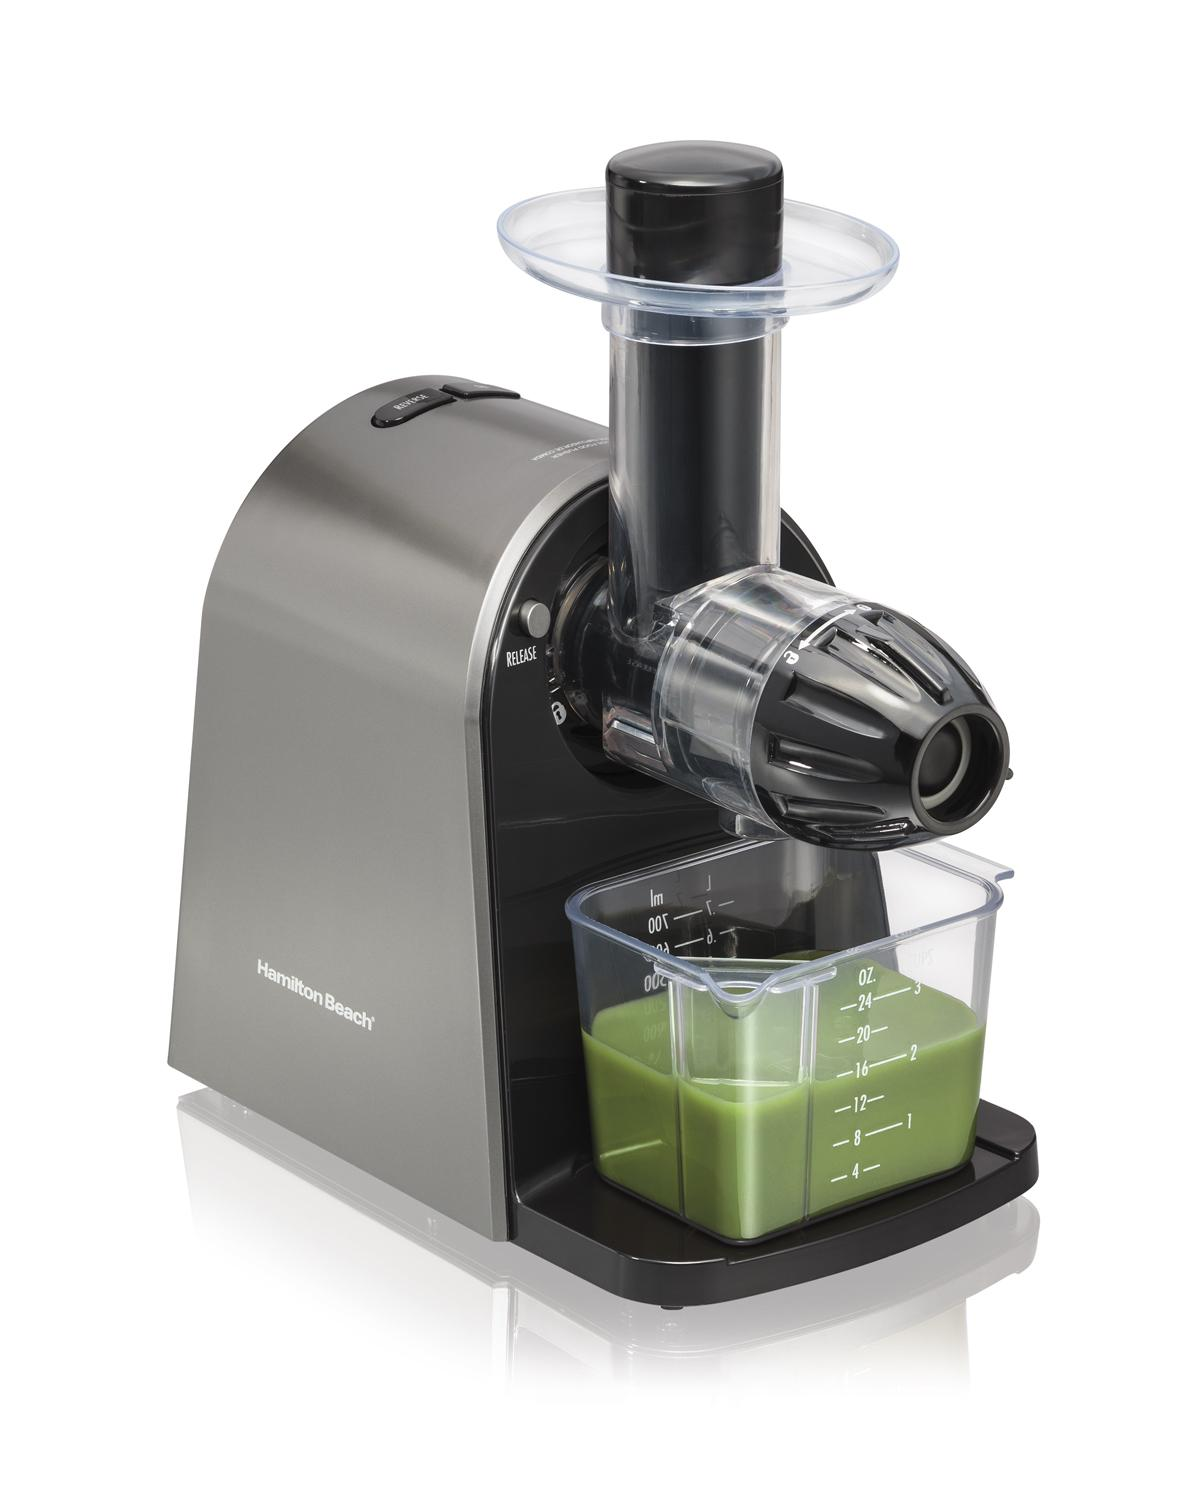 Slow Juicer Oxone Review : juicer breville commercial cuisinart omega extractor slow ...